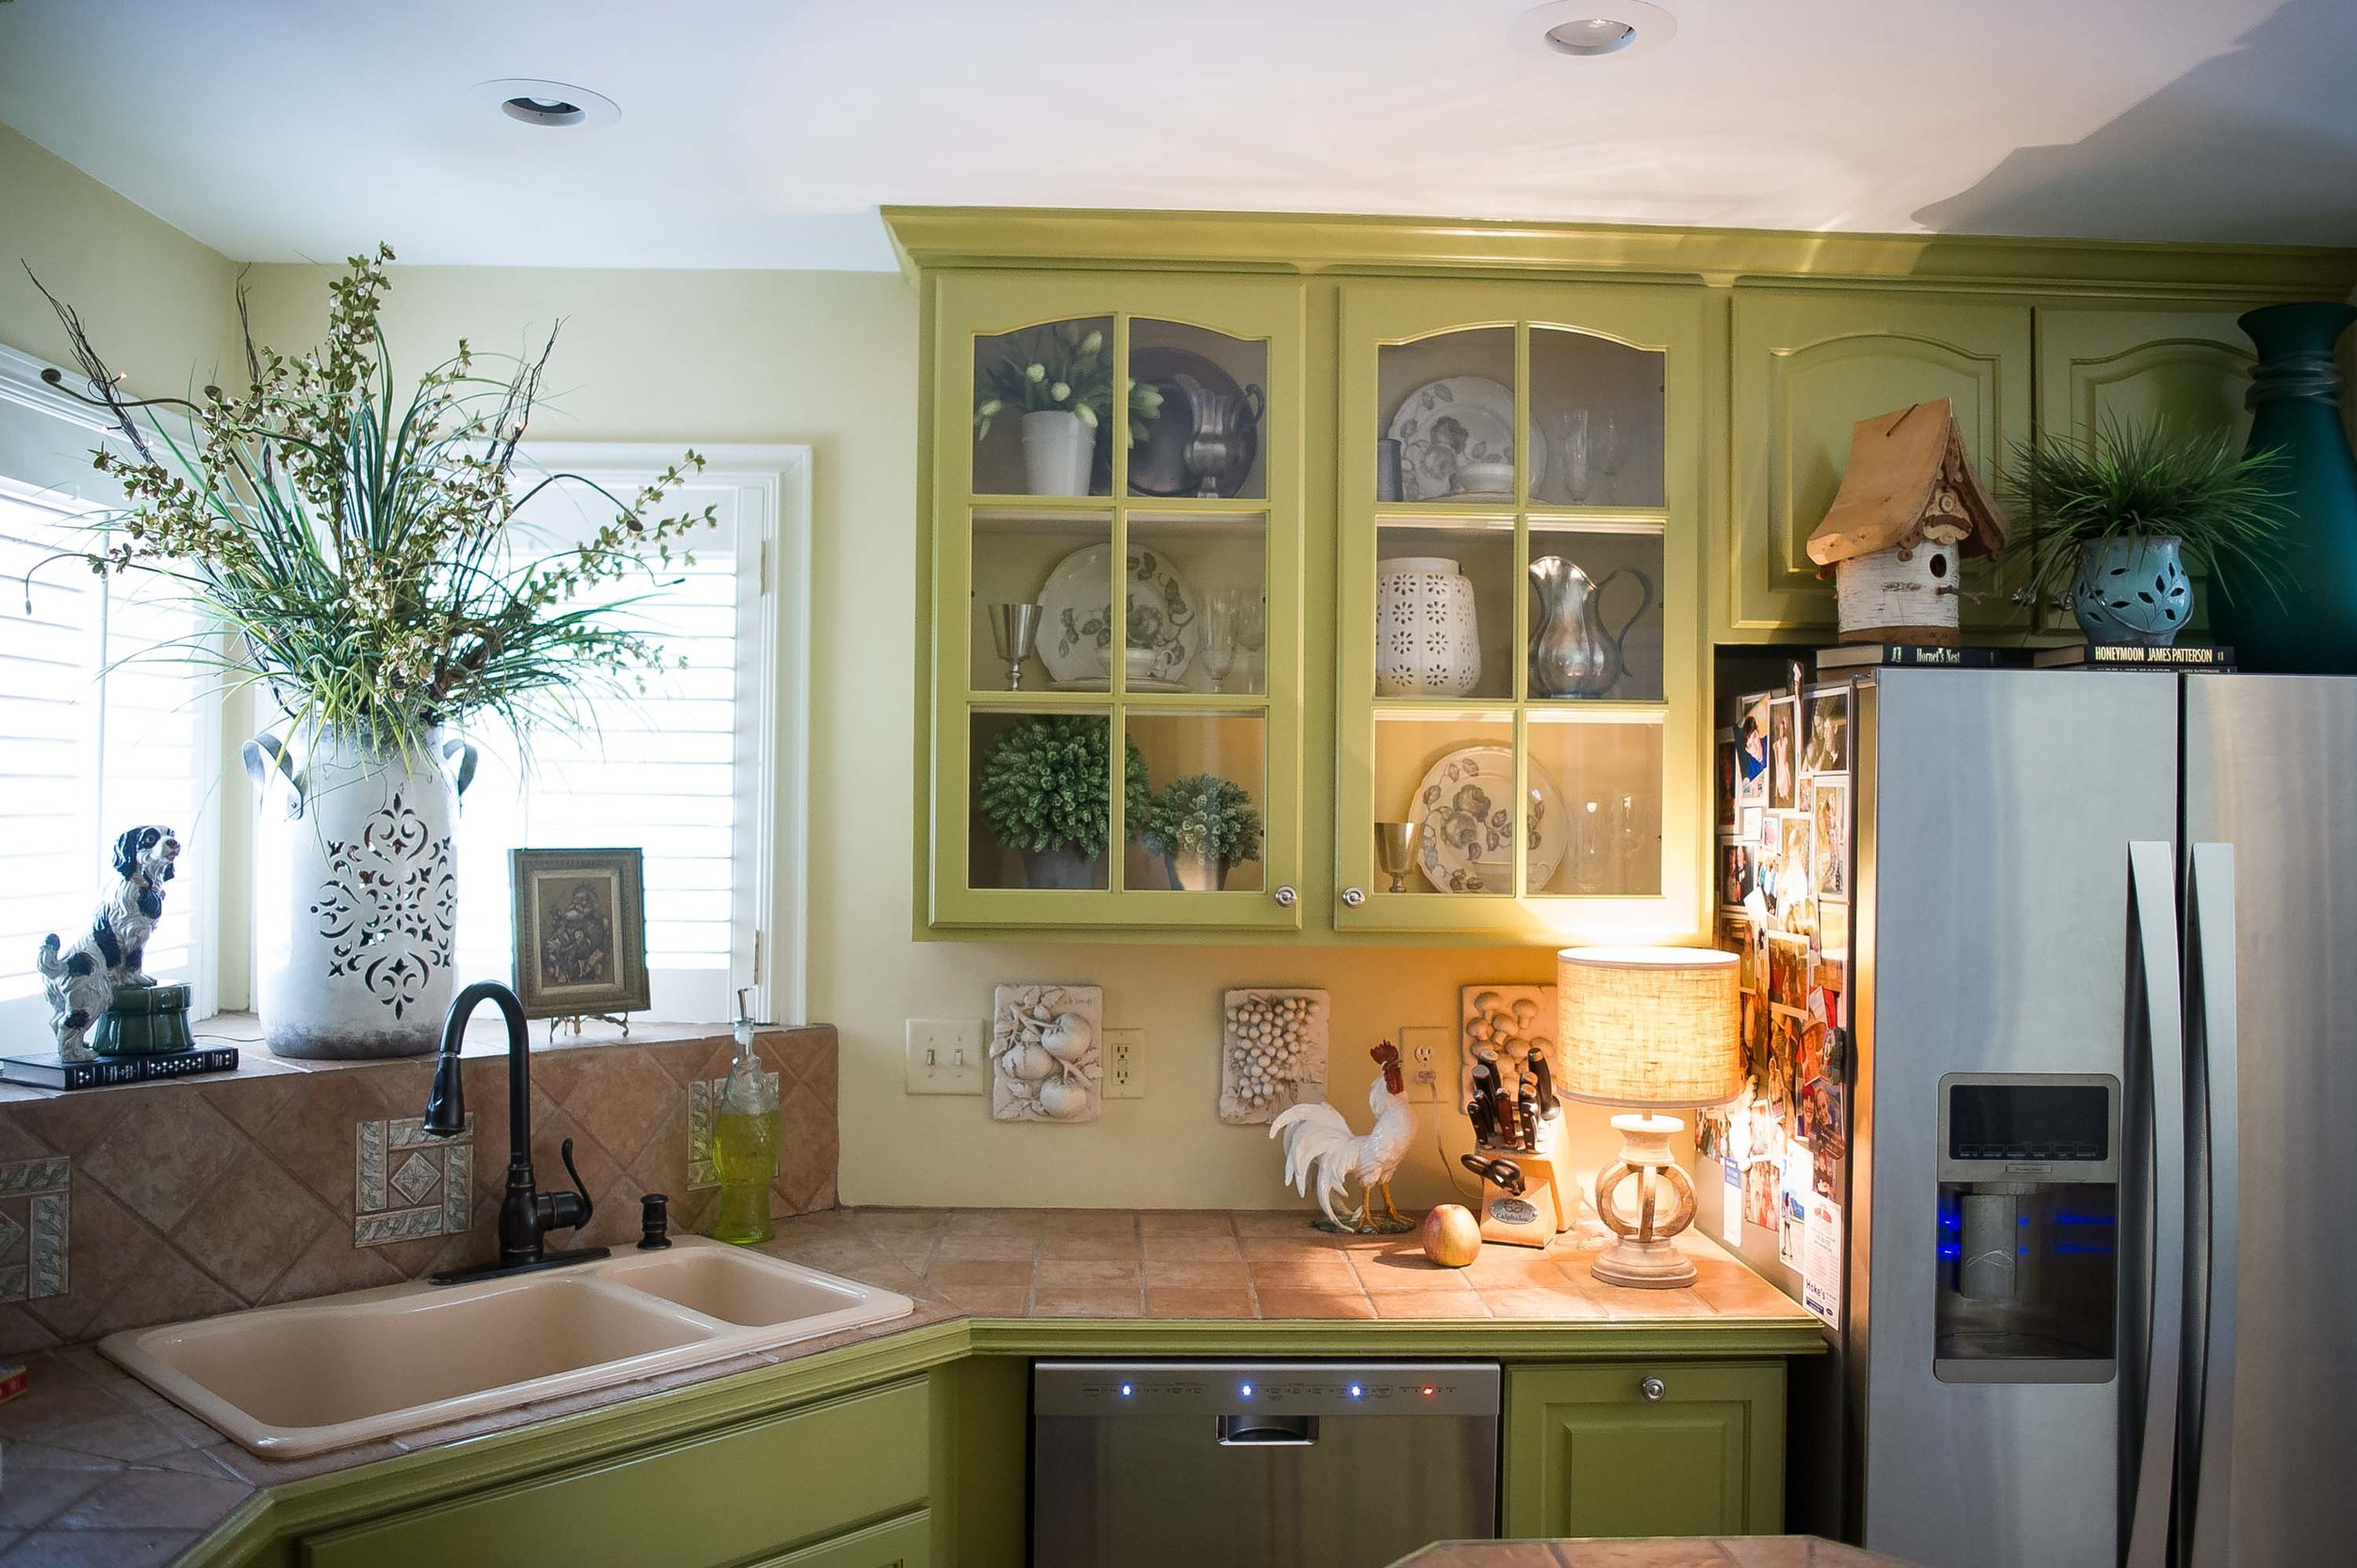 Kitchen with sink, ceramic tile countertop, wooden cabinet and  fridge